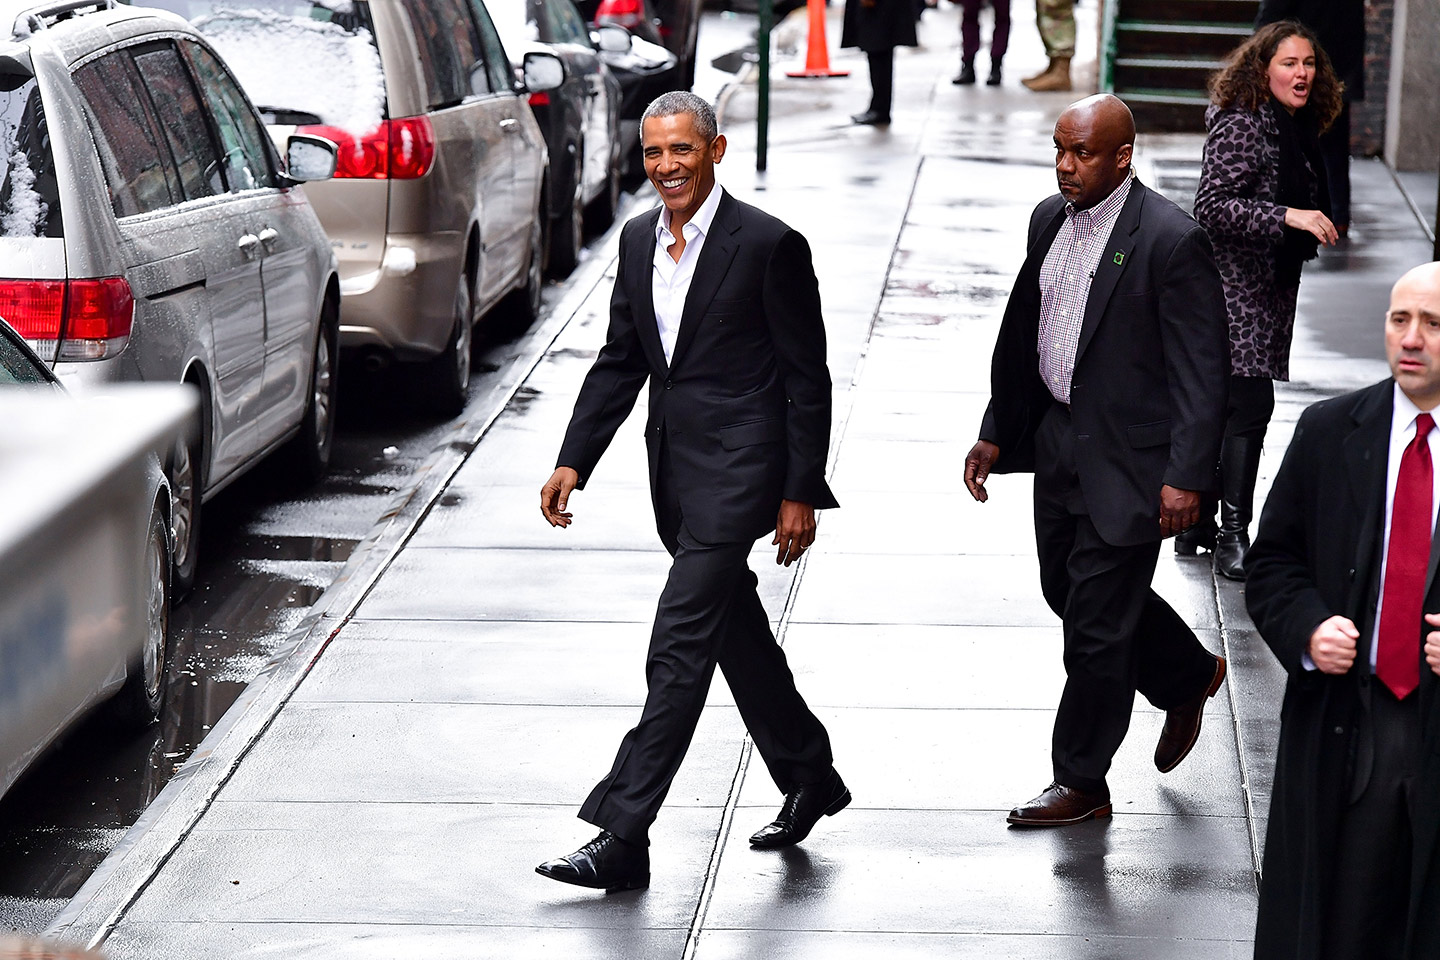 Barack Obama's 'Dad' Style Continues to Evolve Post-Presidency